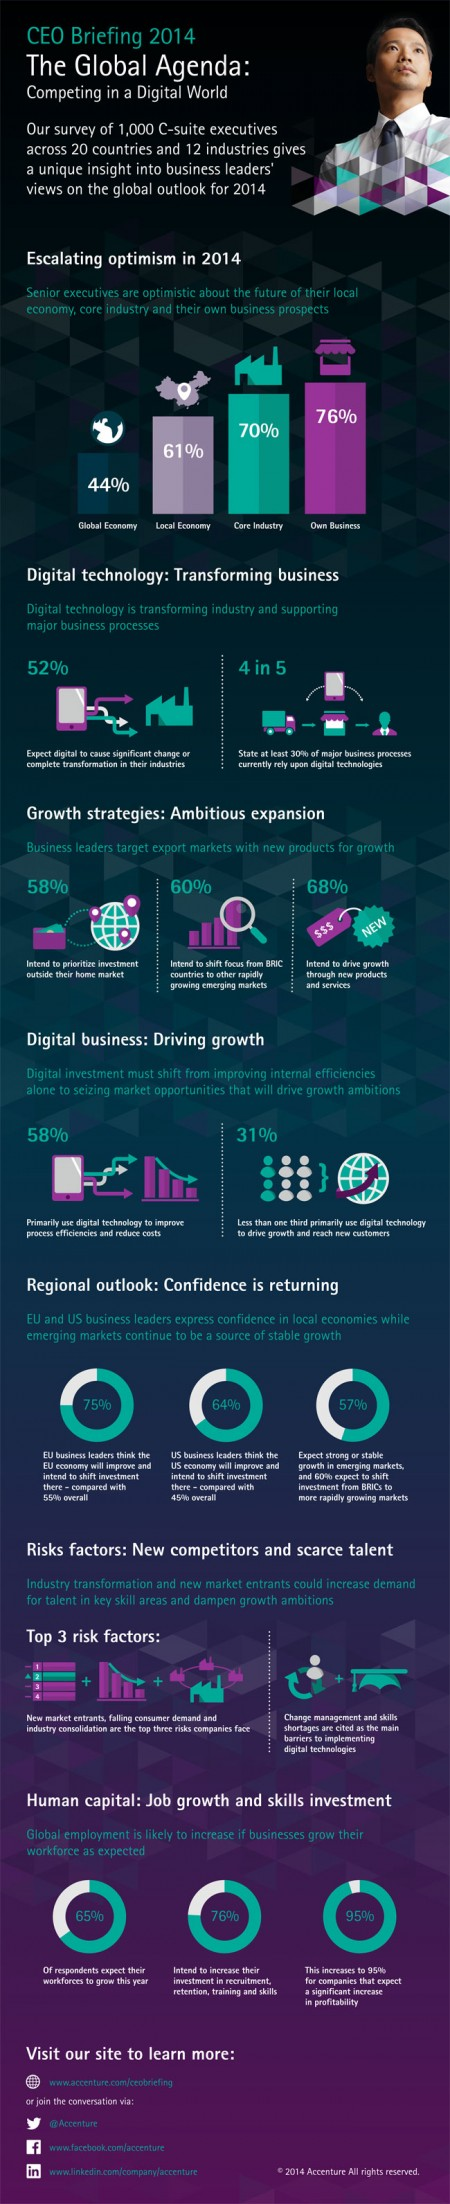 16 Accenture-Global-Agenda-CEO-Briefing-2014-Competing-Digital-World-Infographic-v2